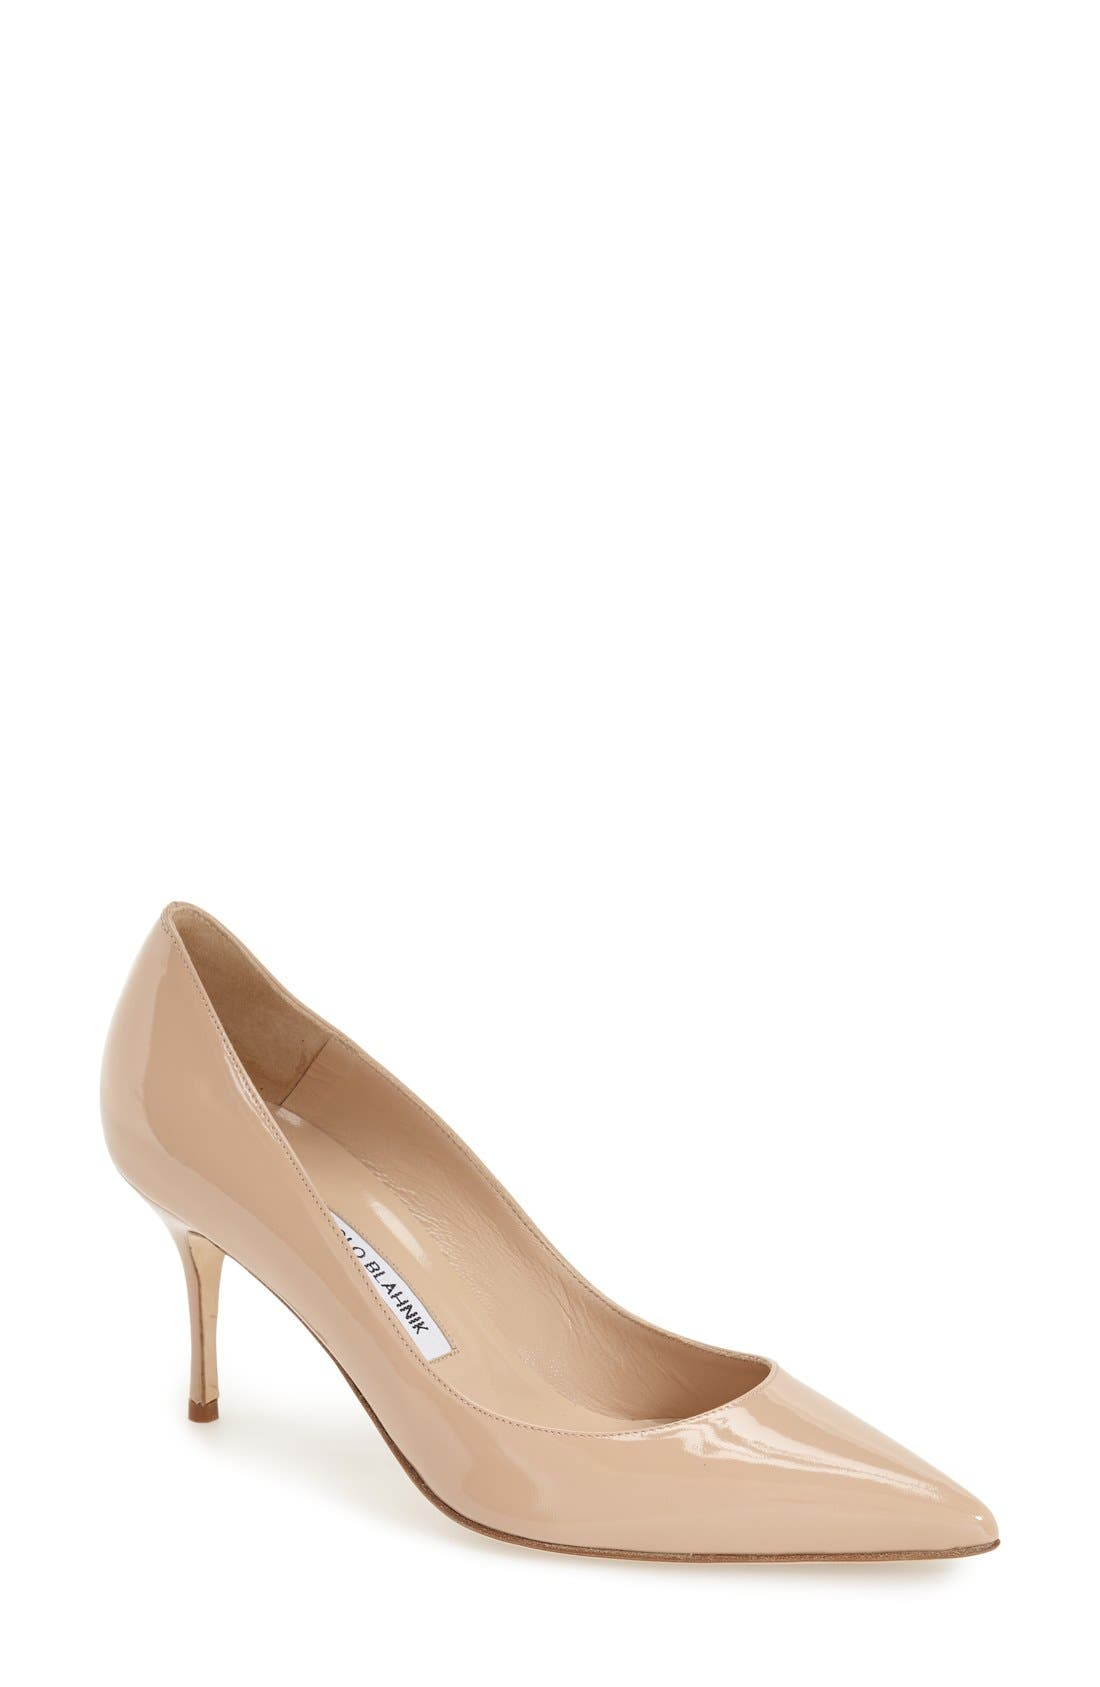 MANOLO BLAHNIK Nausikaba Pointy Toe Pump